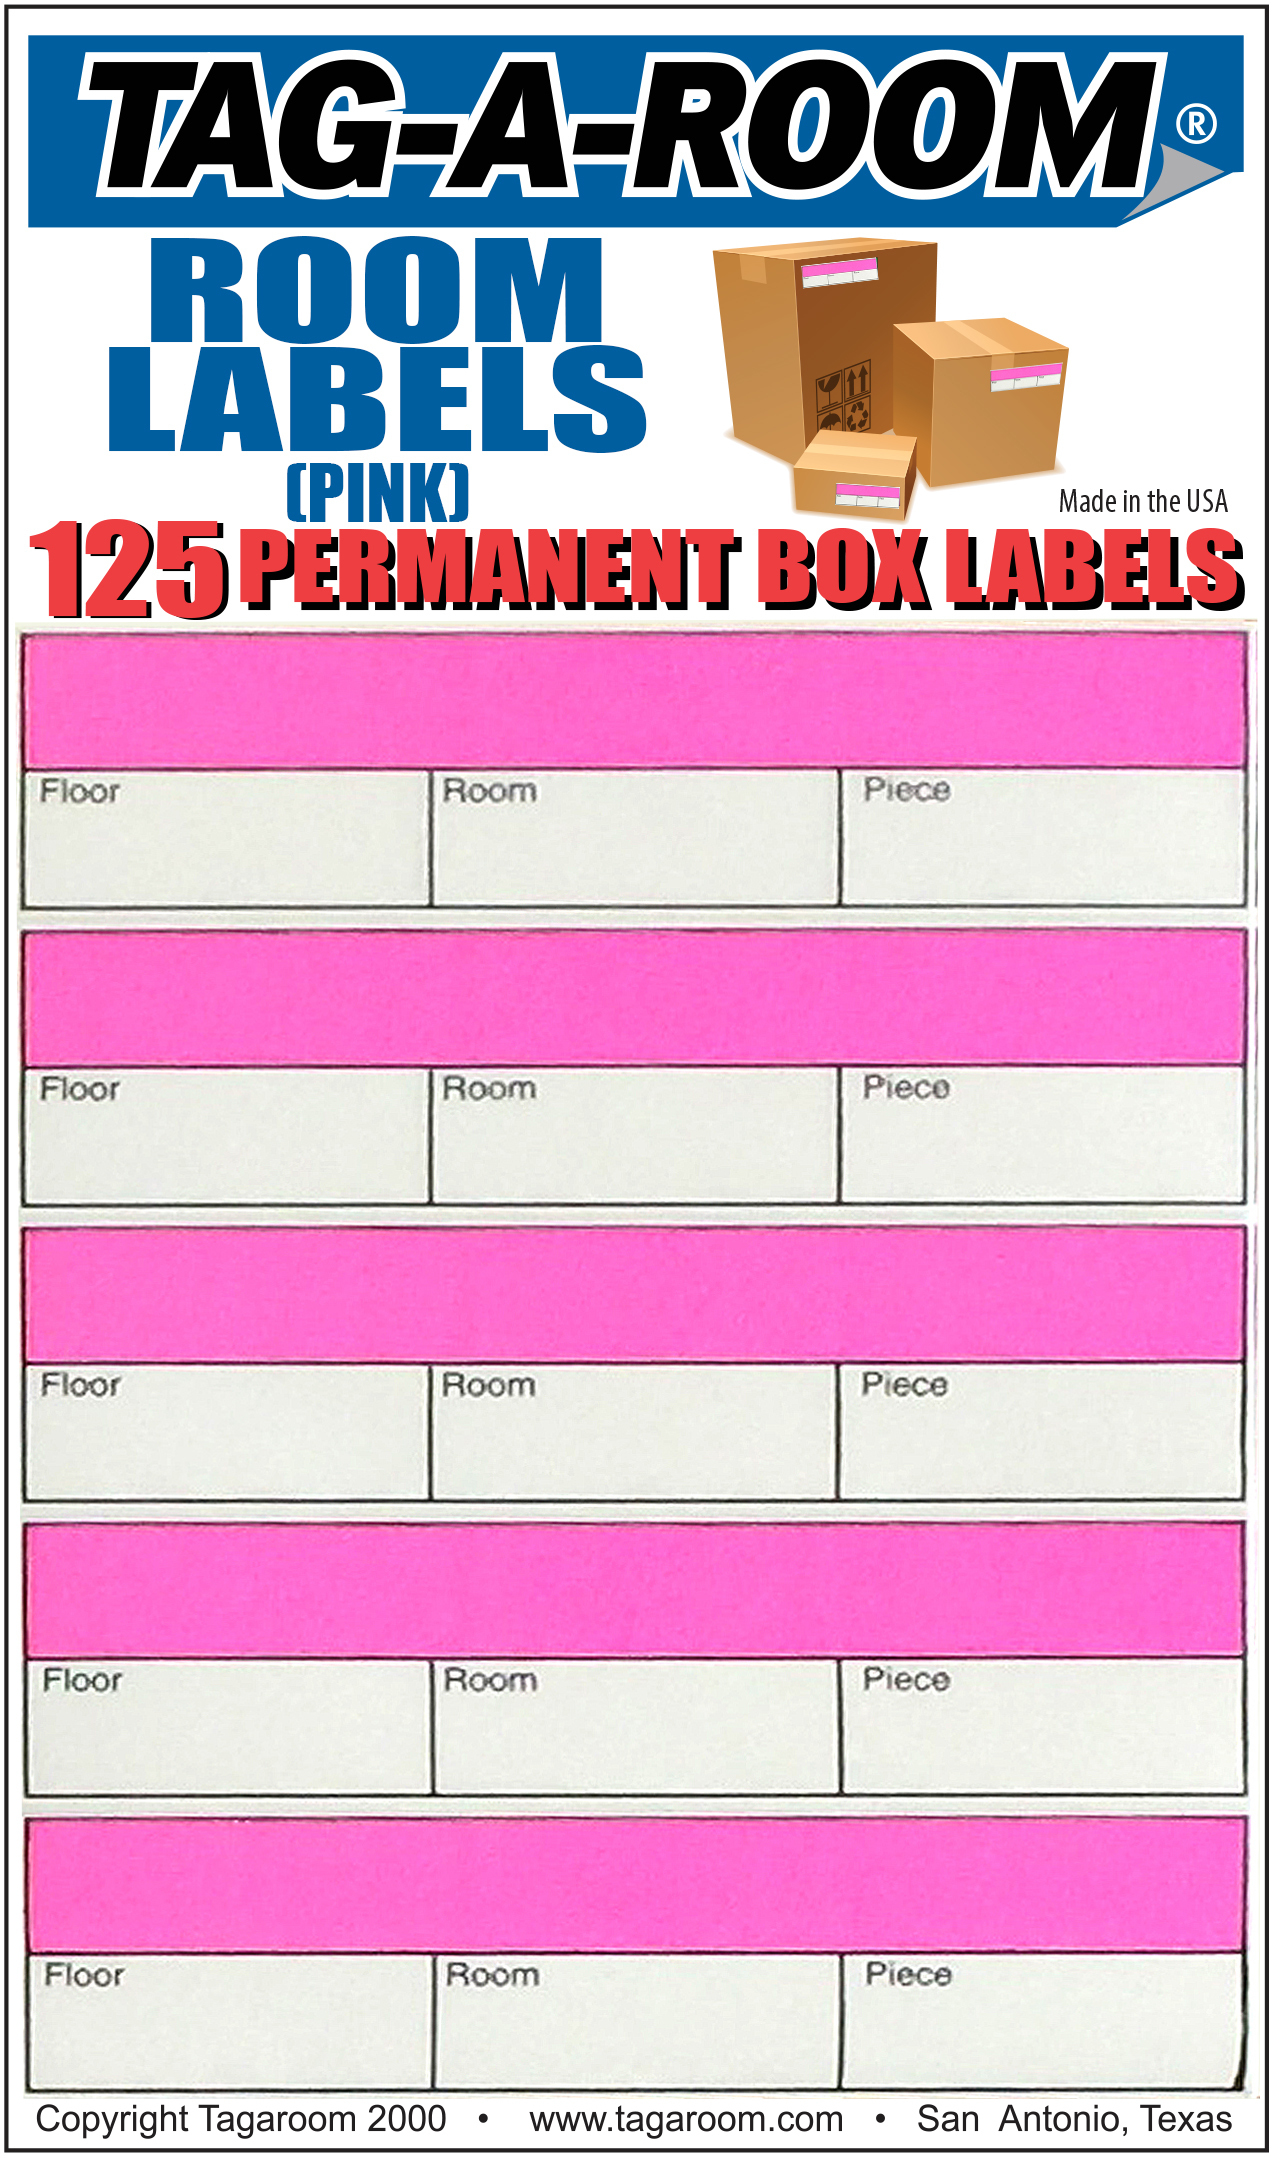 Office - Label - Room - Pink - 125 Count 011239